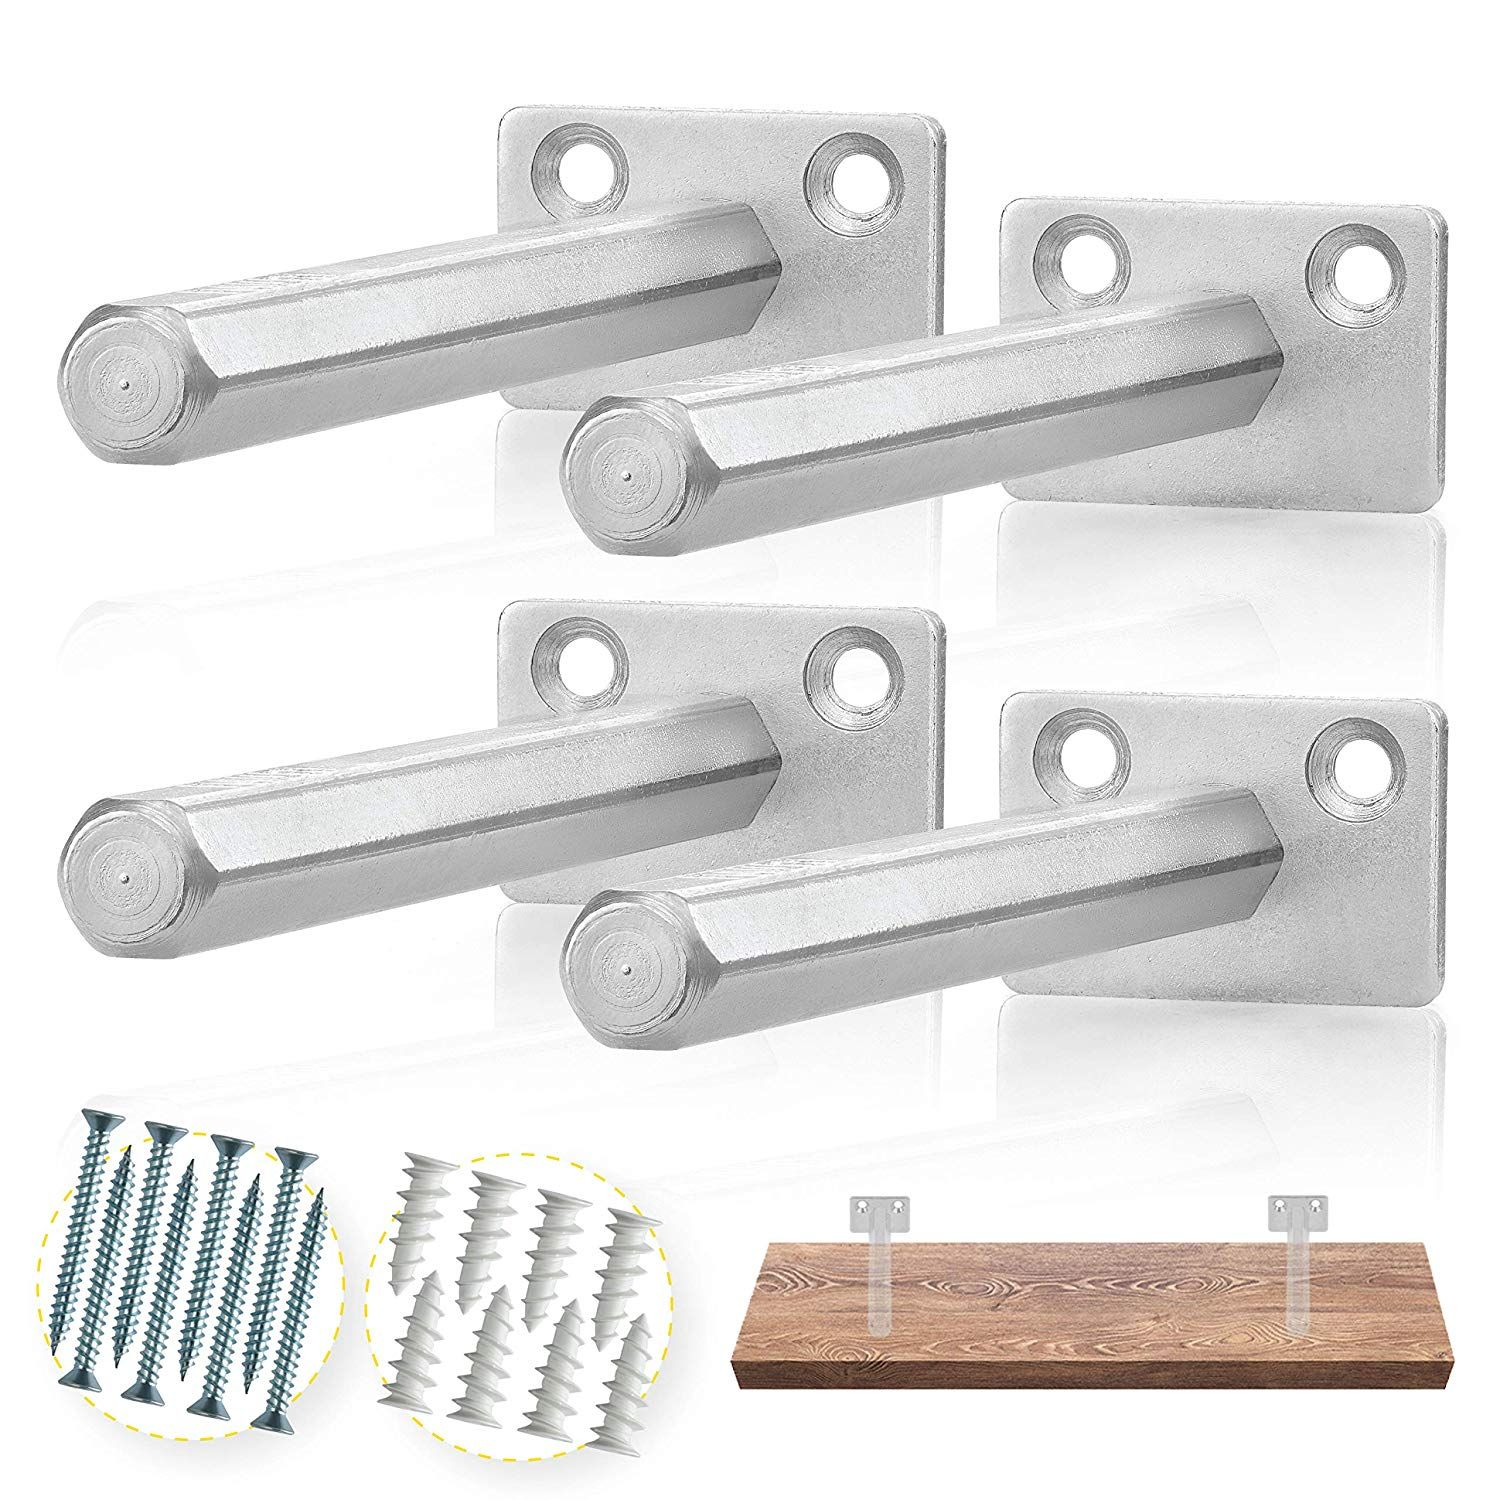 Floating Shelf Fixing Bracket Floating Shelf Brackets Floating Shelf Fixings Shelf Brackets